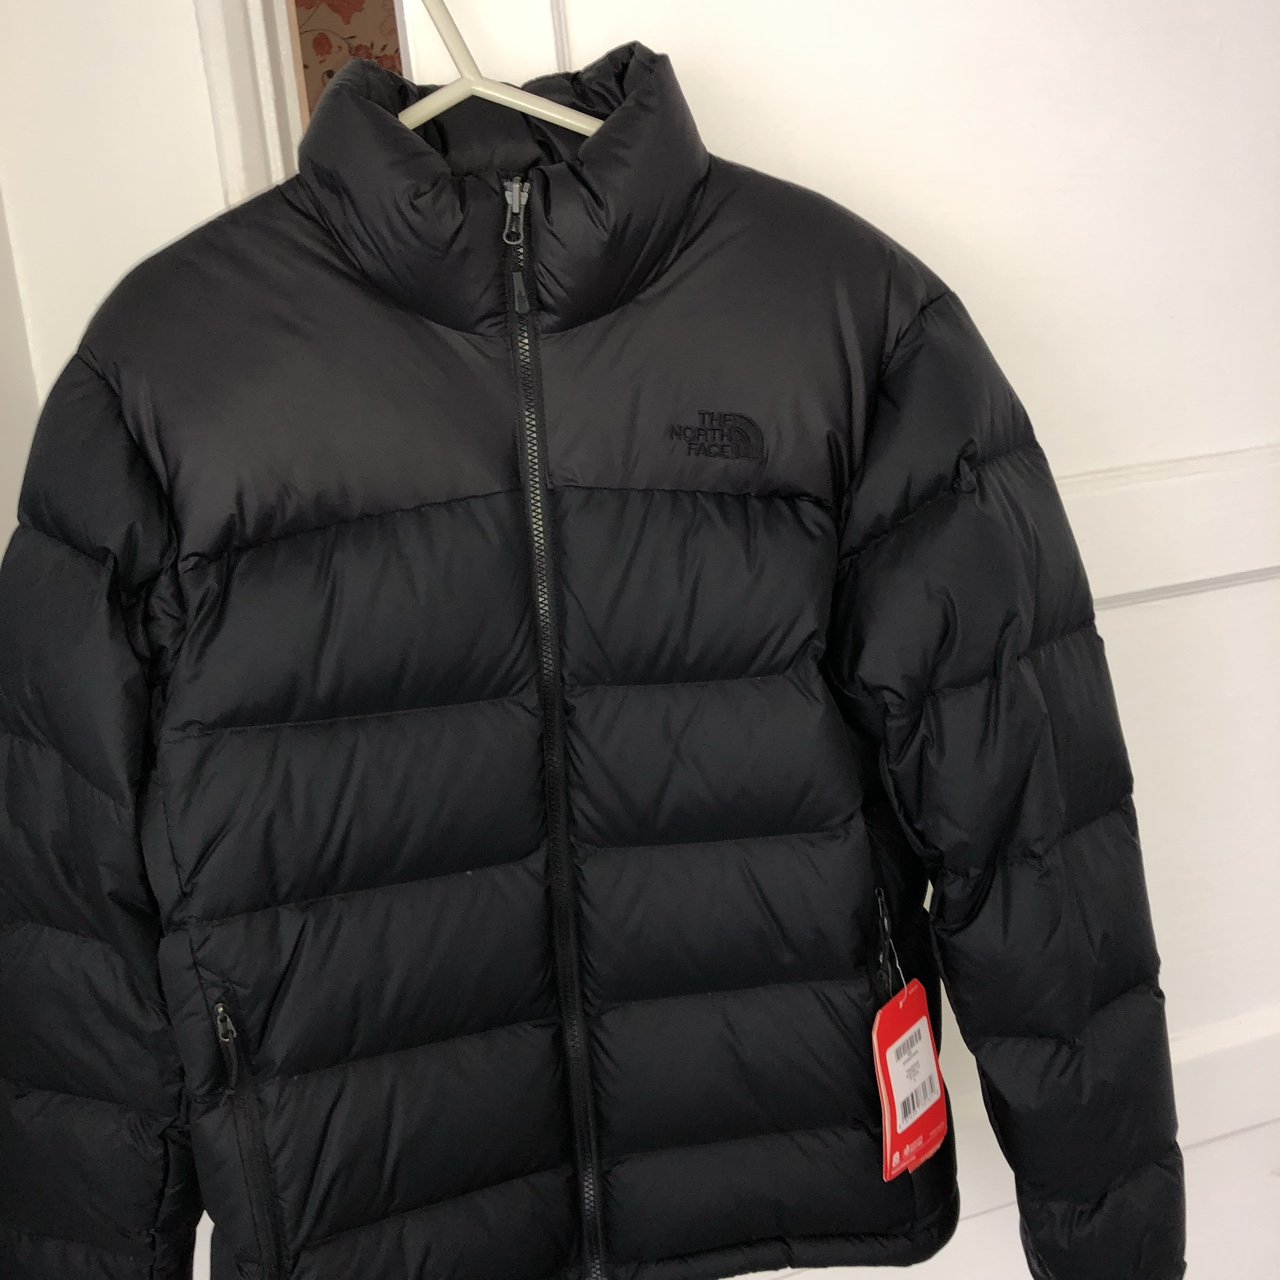 5c845240f The North Face Nupste Jacket, new with tags rrp £180... - Depop